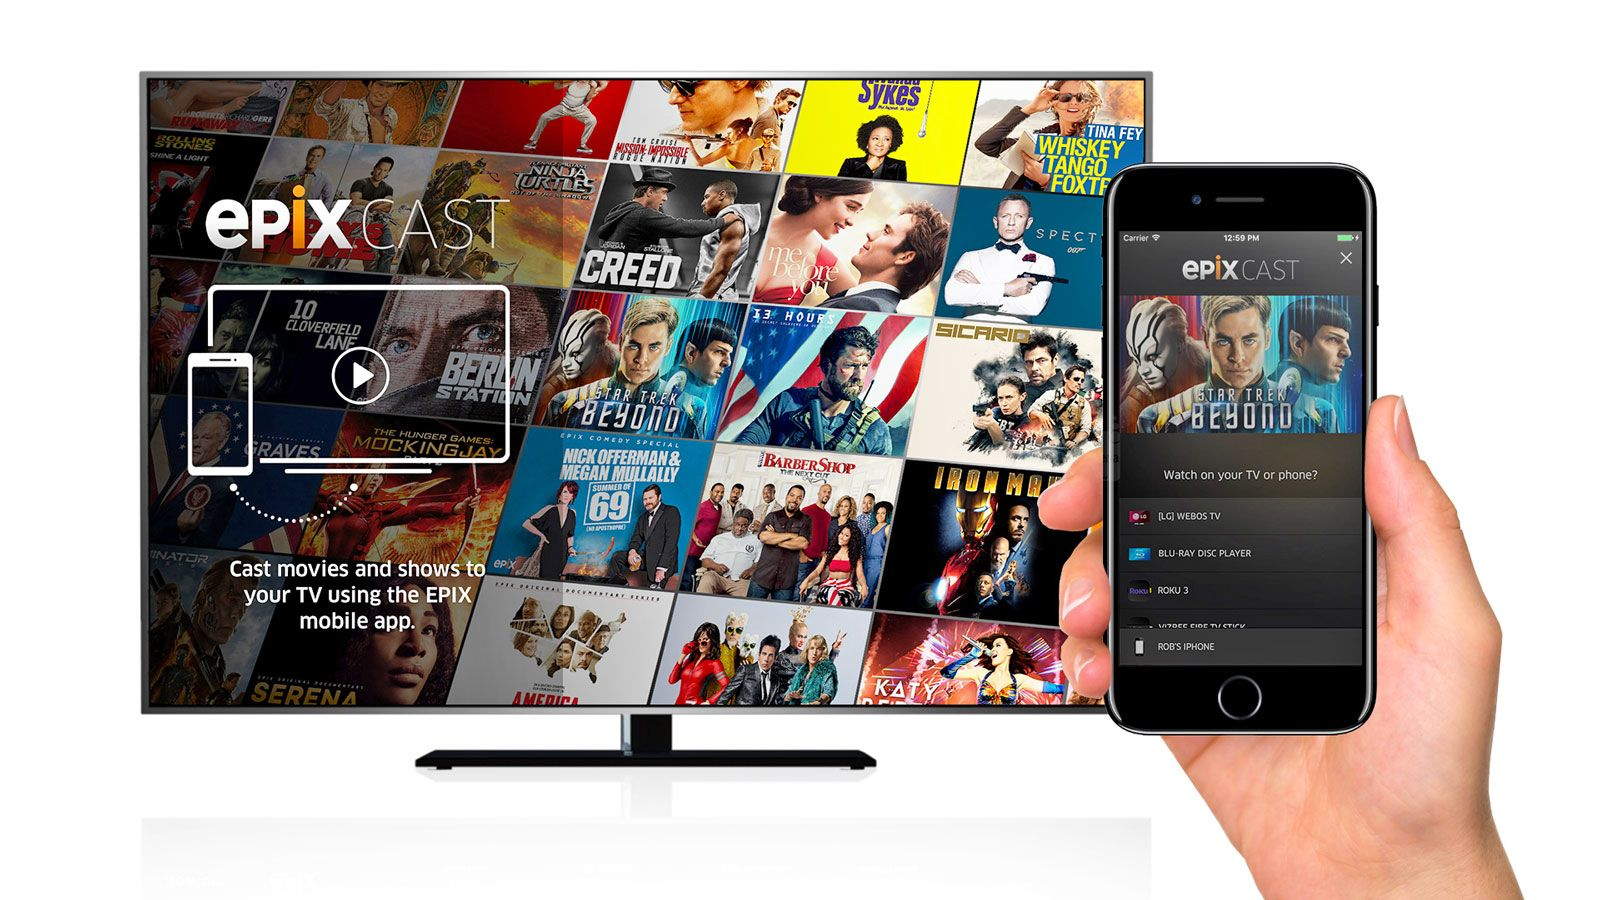 Epix's mobile app casts to smart TVs without a settop box